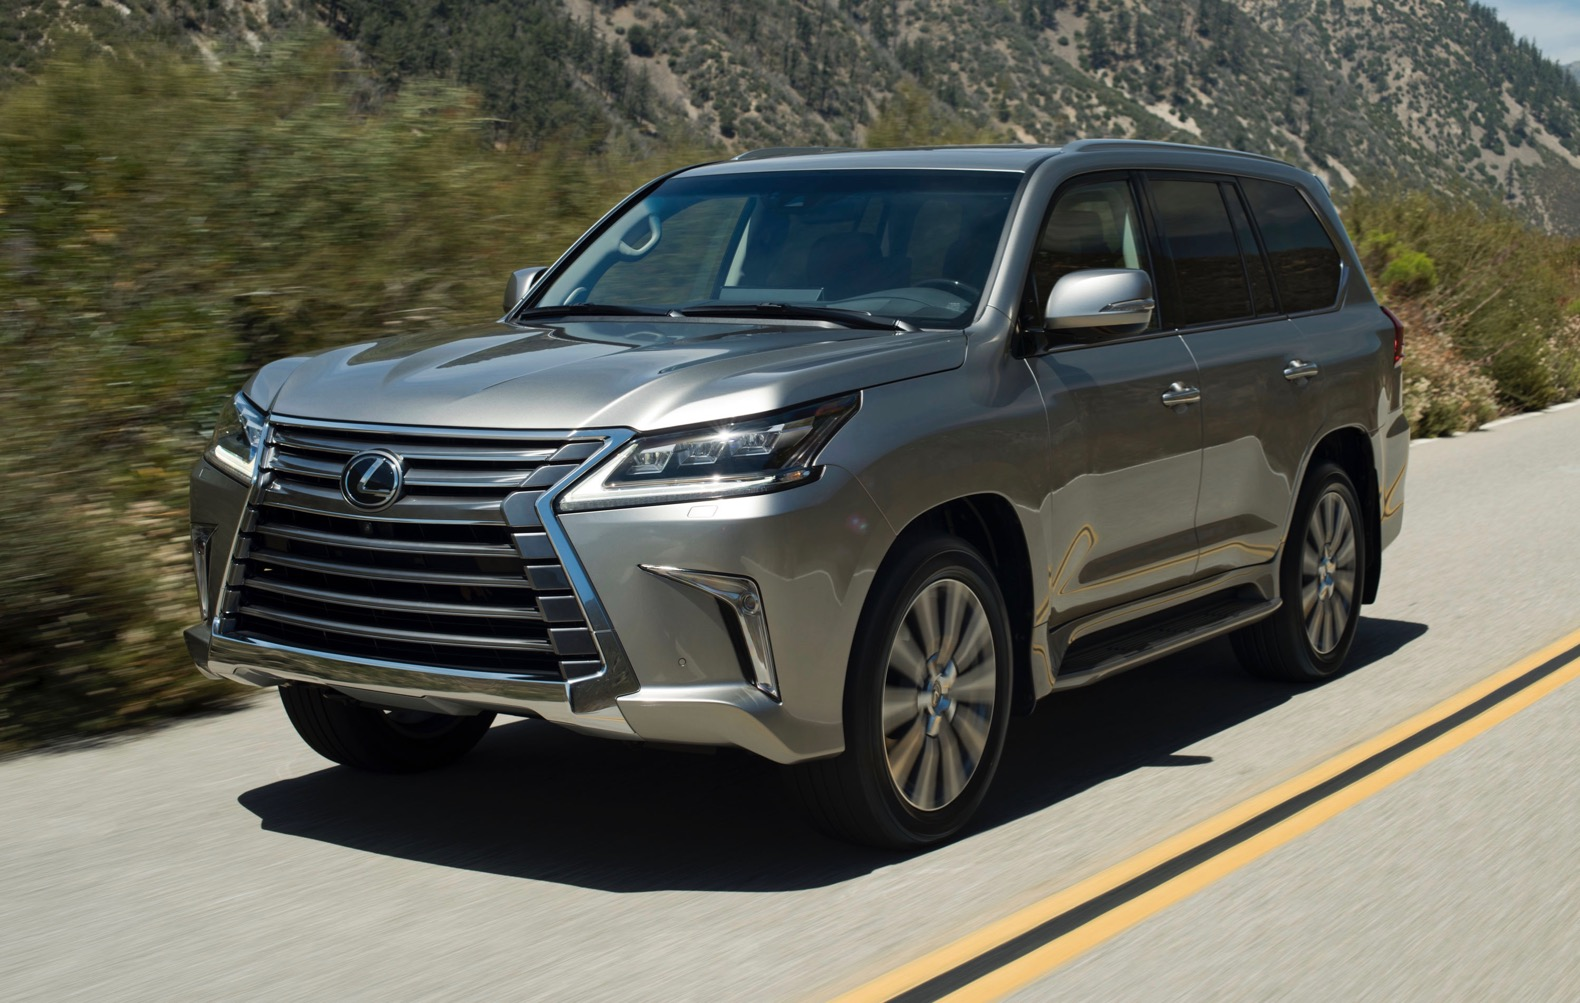 2020 lexus lx 570 review: the luxurious gentle giant | the